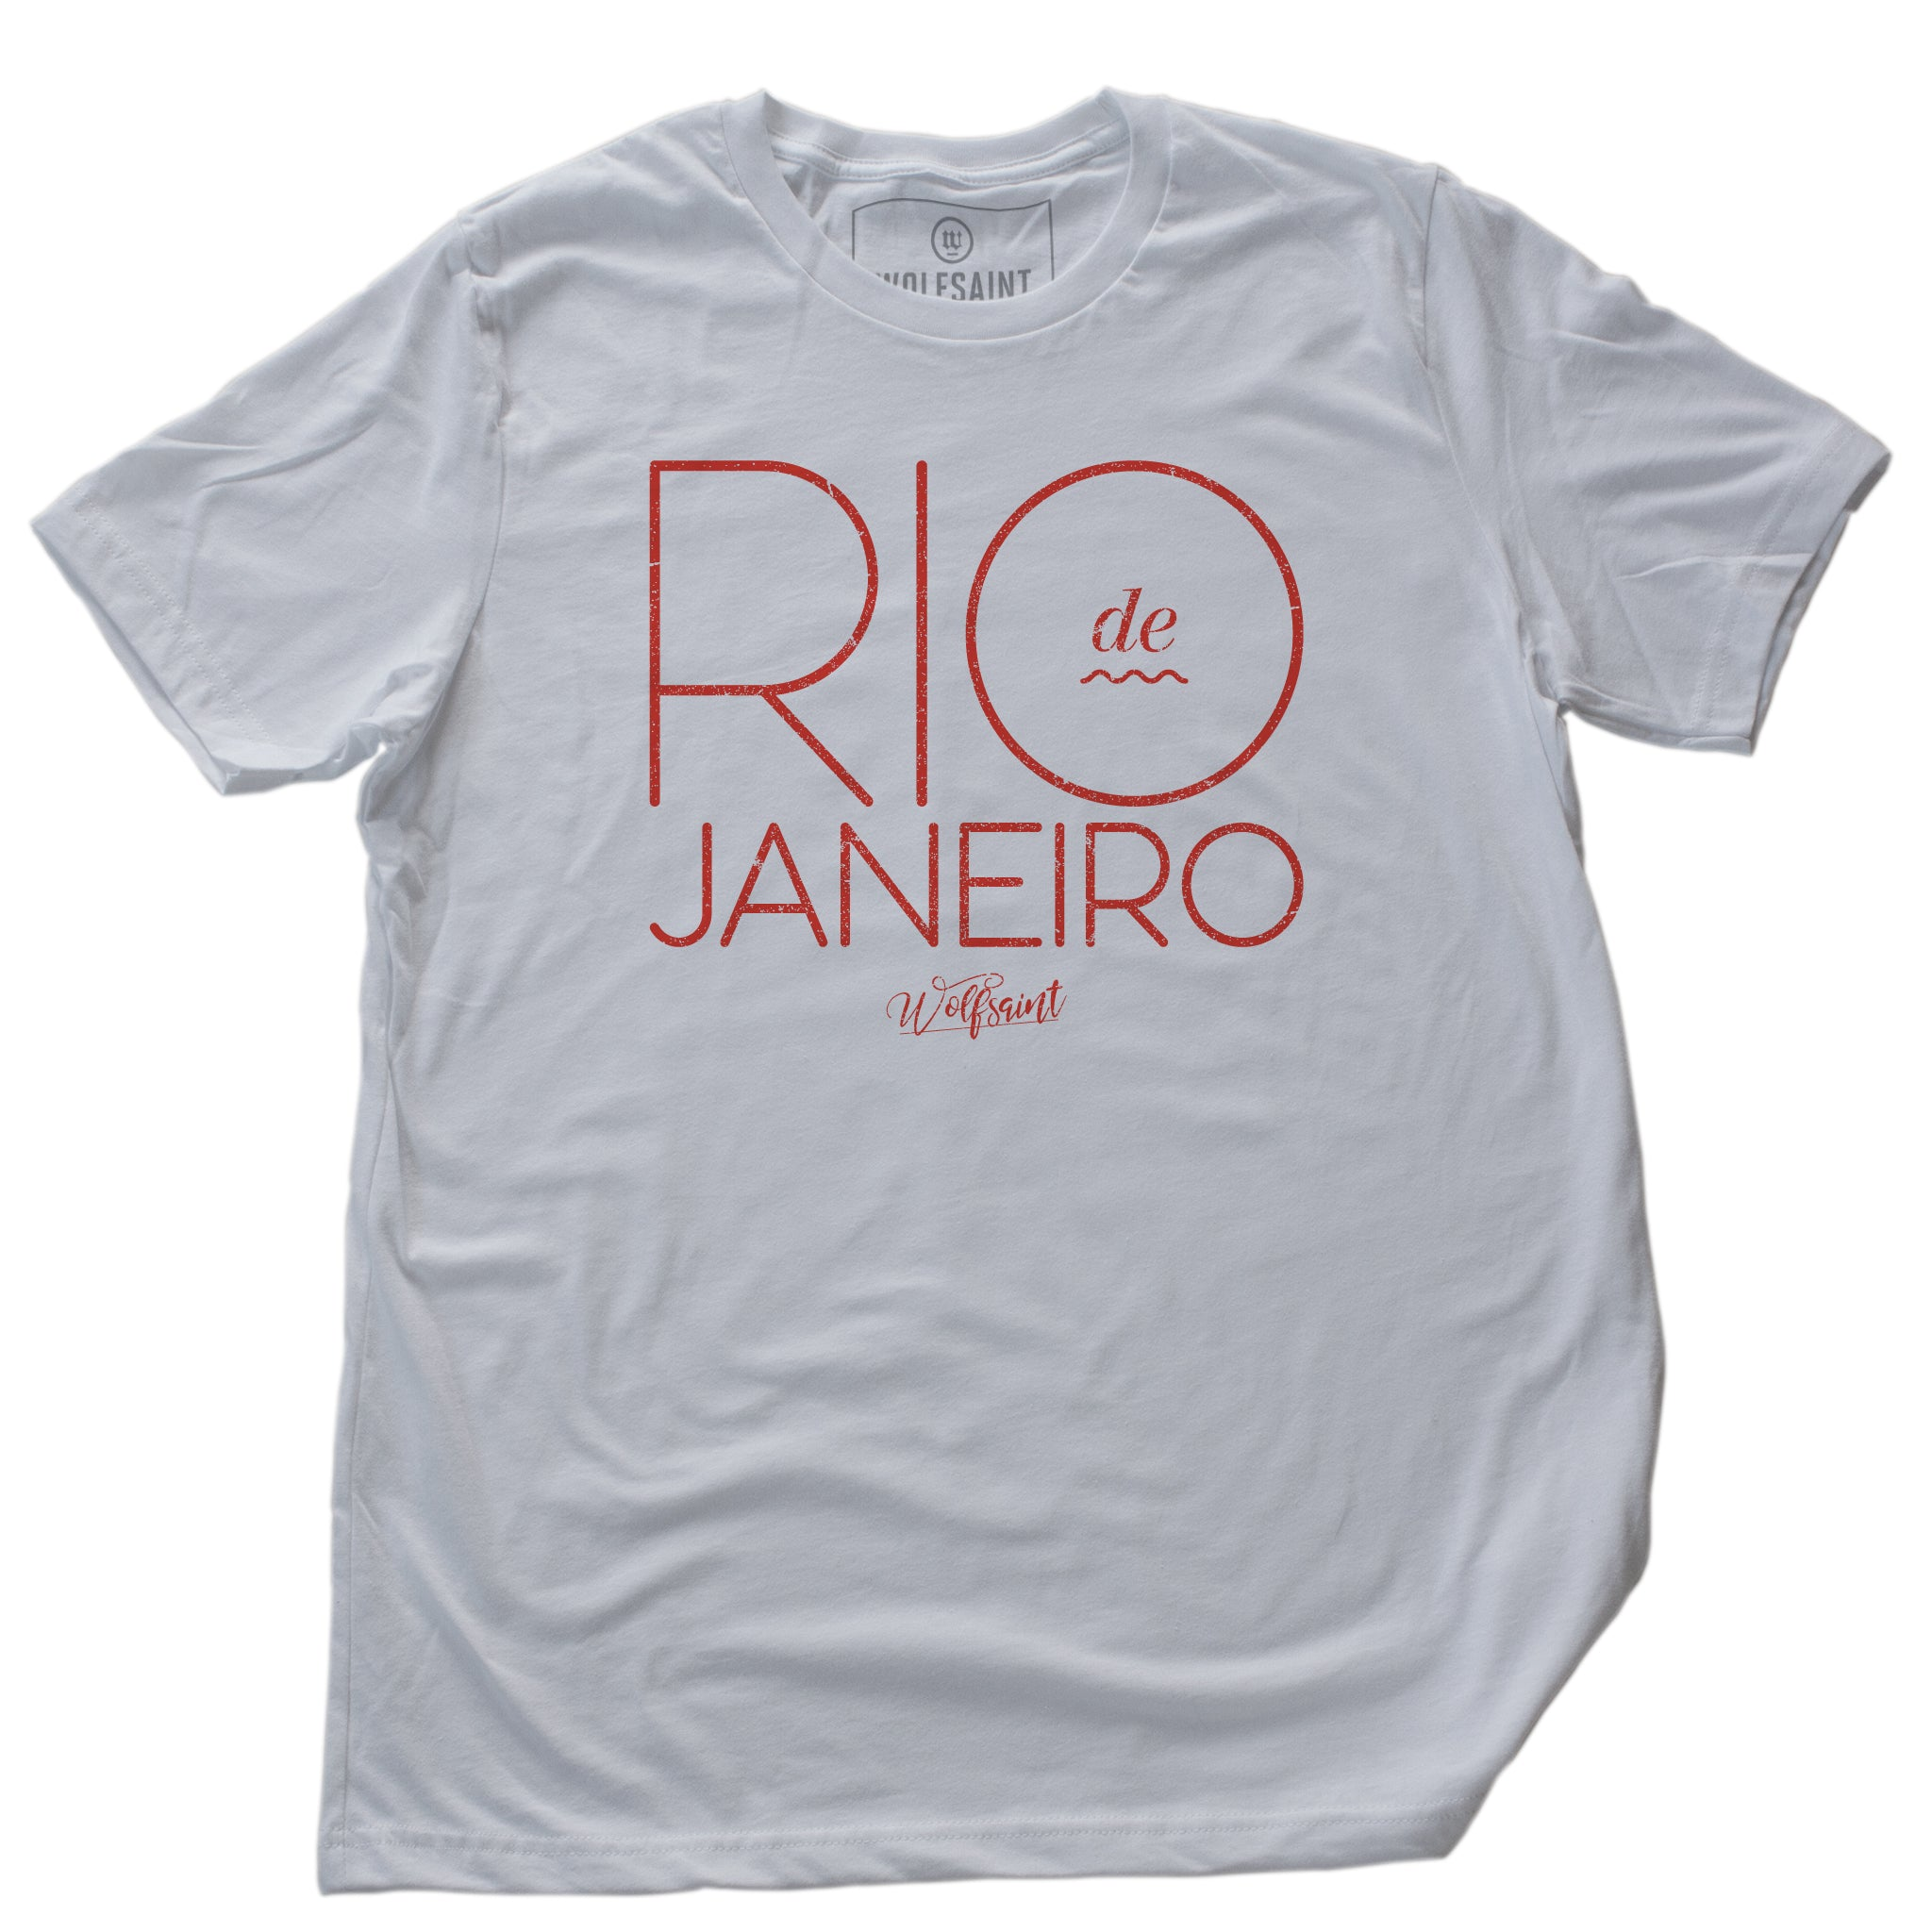 An elegant, retro design fashion t-shirt with RIO DE JANEIRO in large orange typography in a thin font on White cotton. The Wolfsaint script logo is below. From Wolfsaint.net